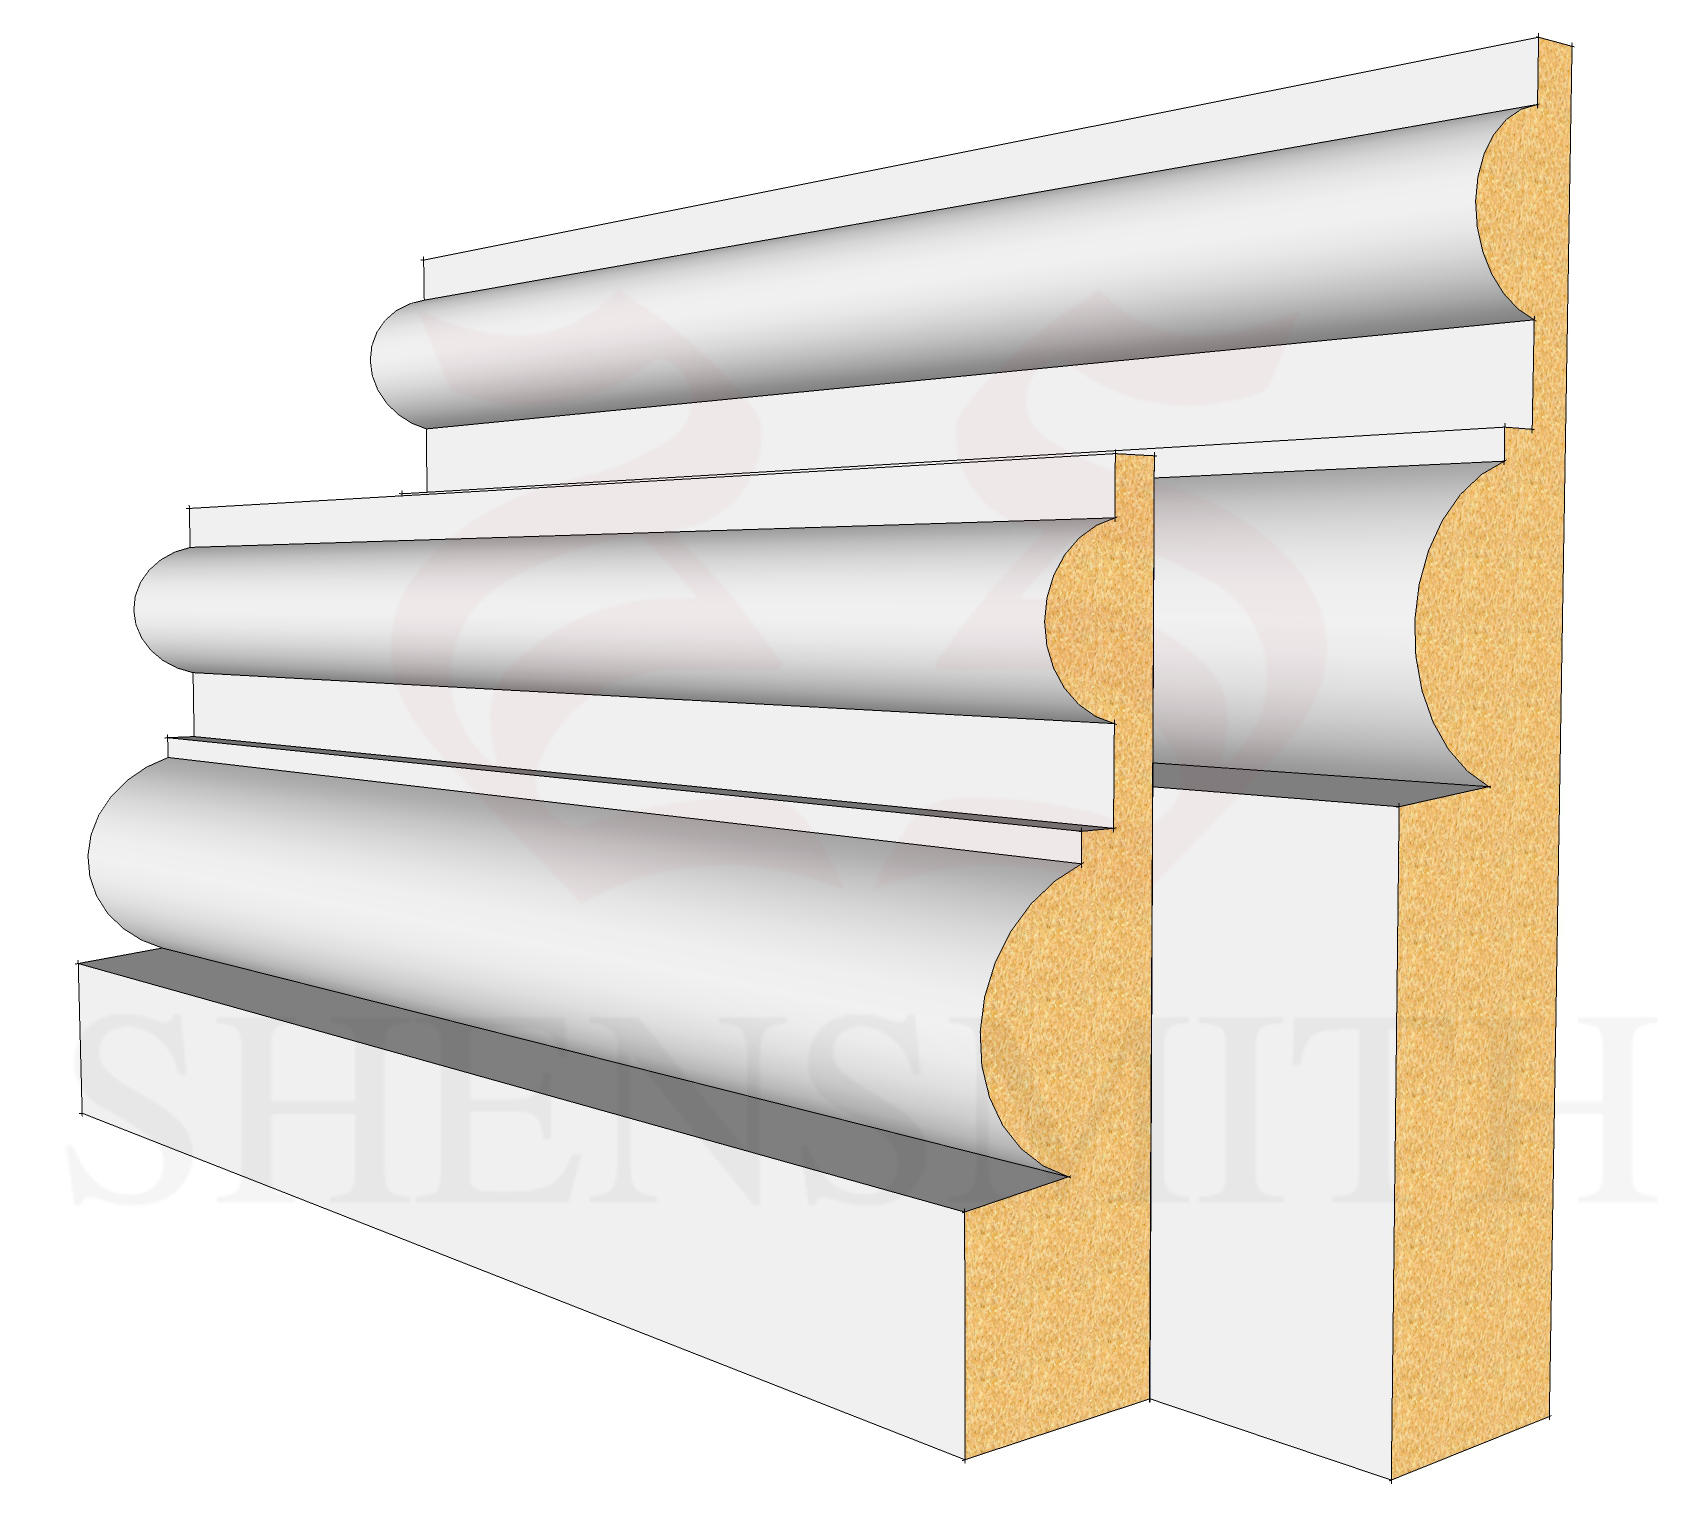 Belmoral Profile Skirting Board